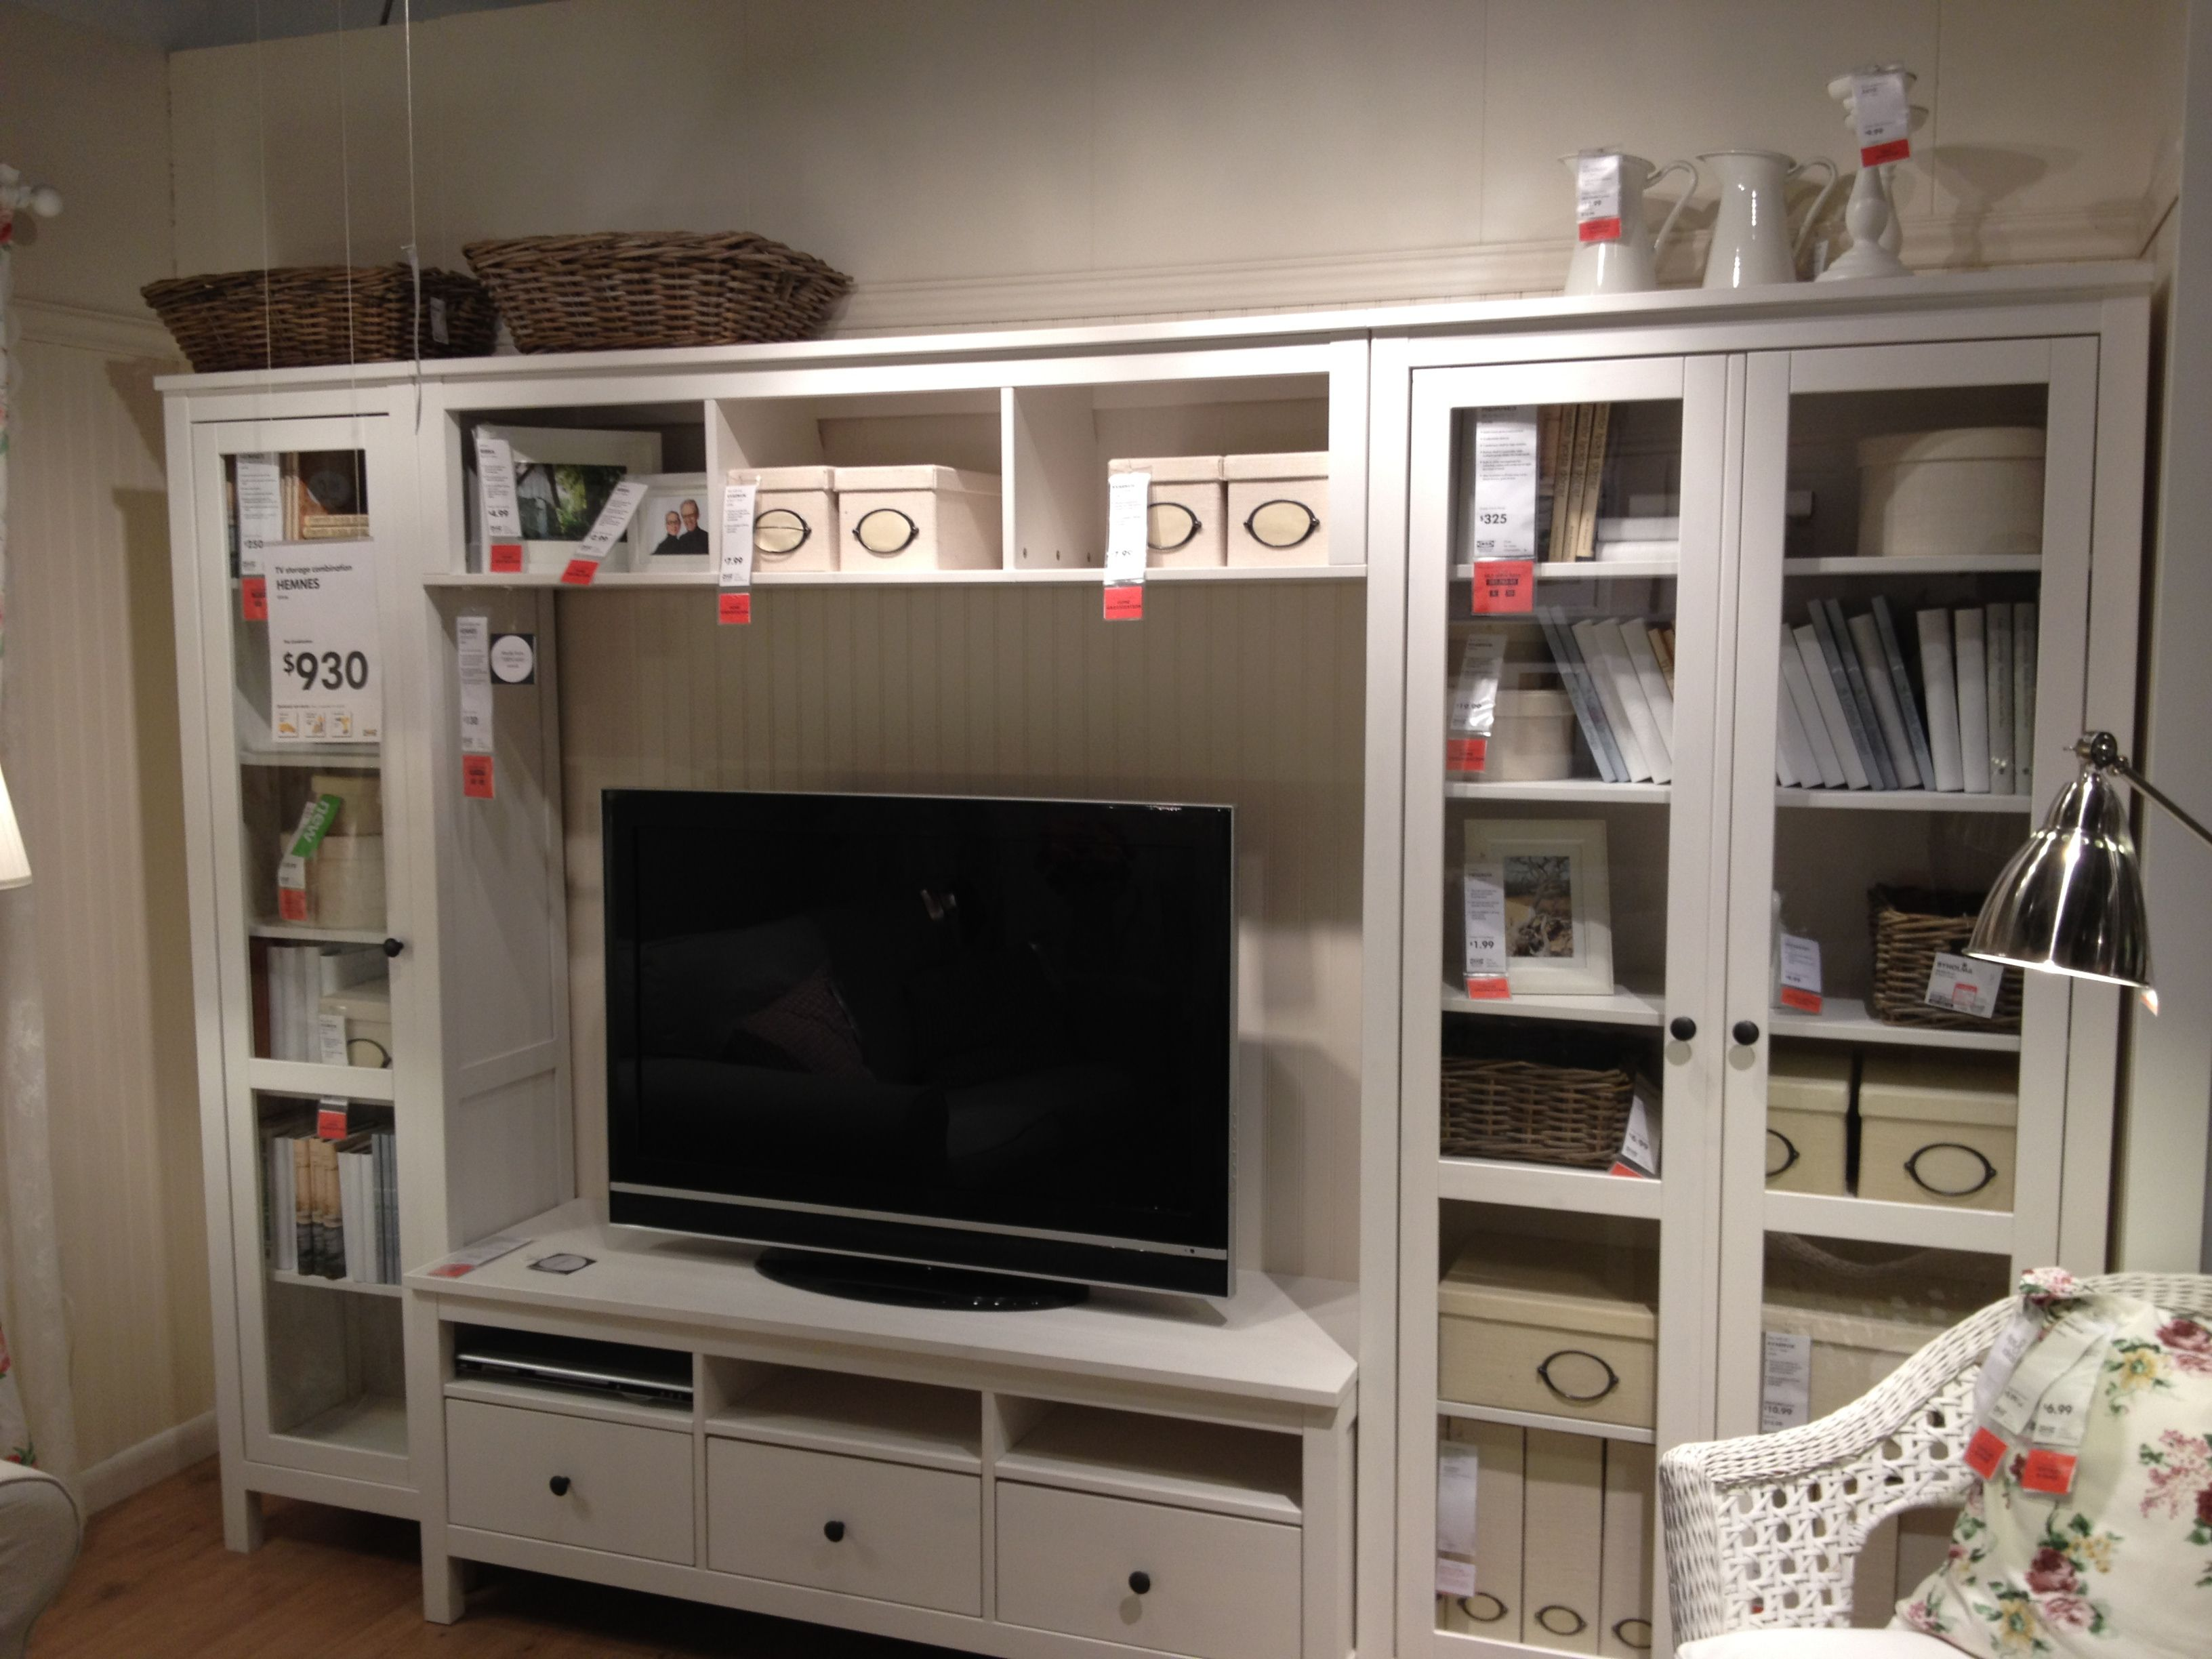 Tv Storage Combination Ikea Hemnes 930 Loft Pinterest Tv  # Combinaison Besta Et Liatorp